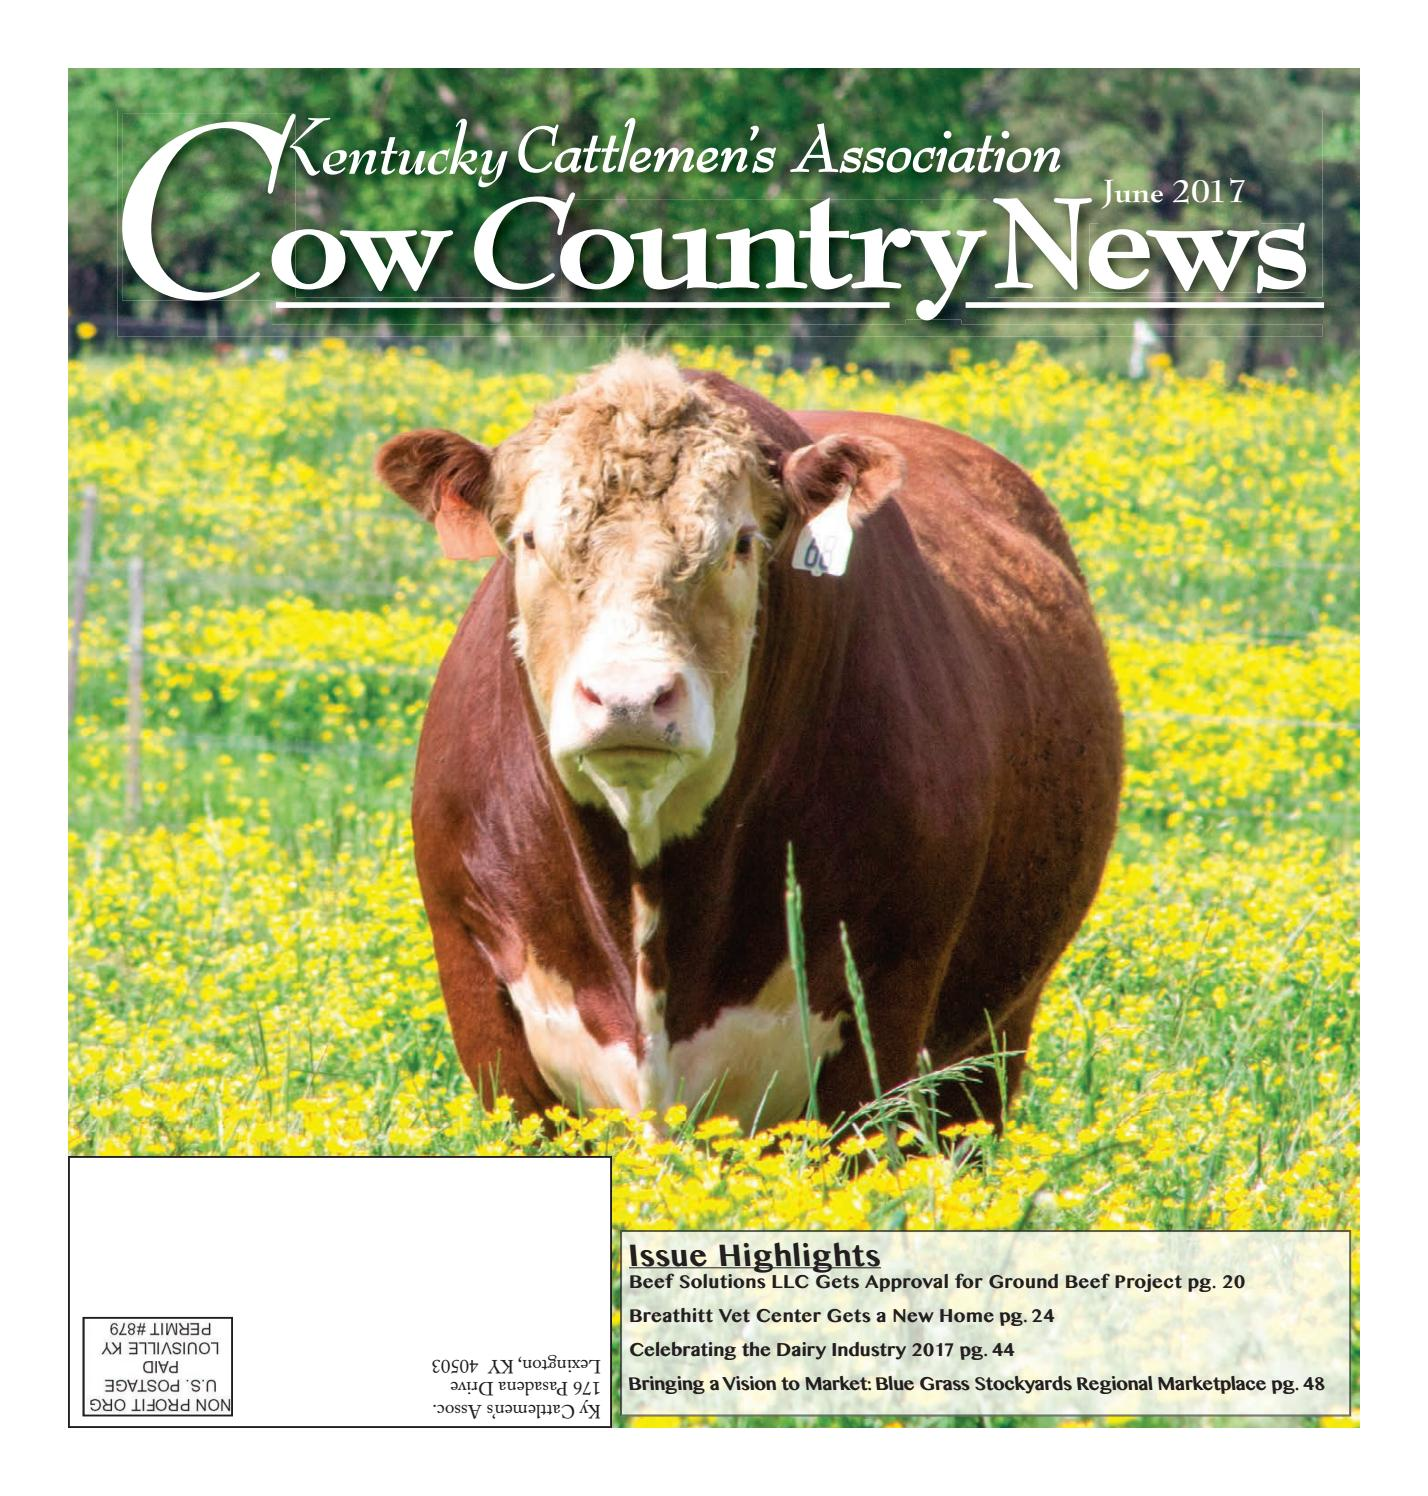 Cow country news june 2017 by the kentucky cattlemens association issuu